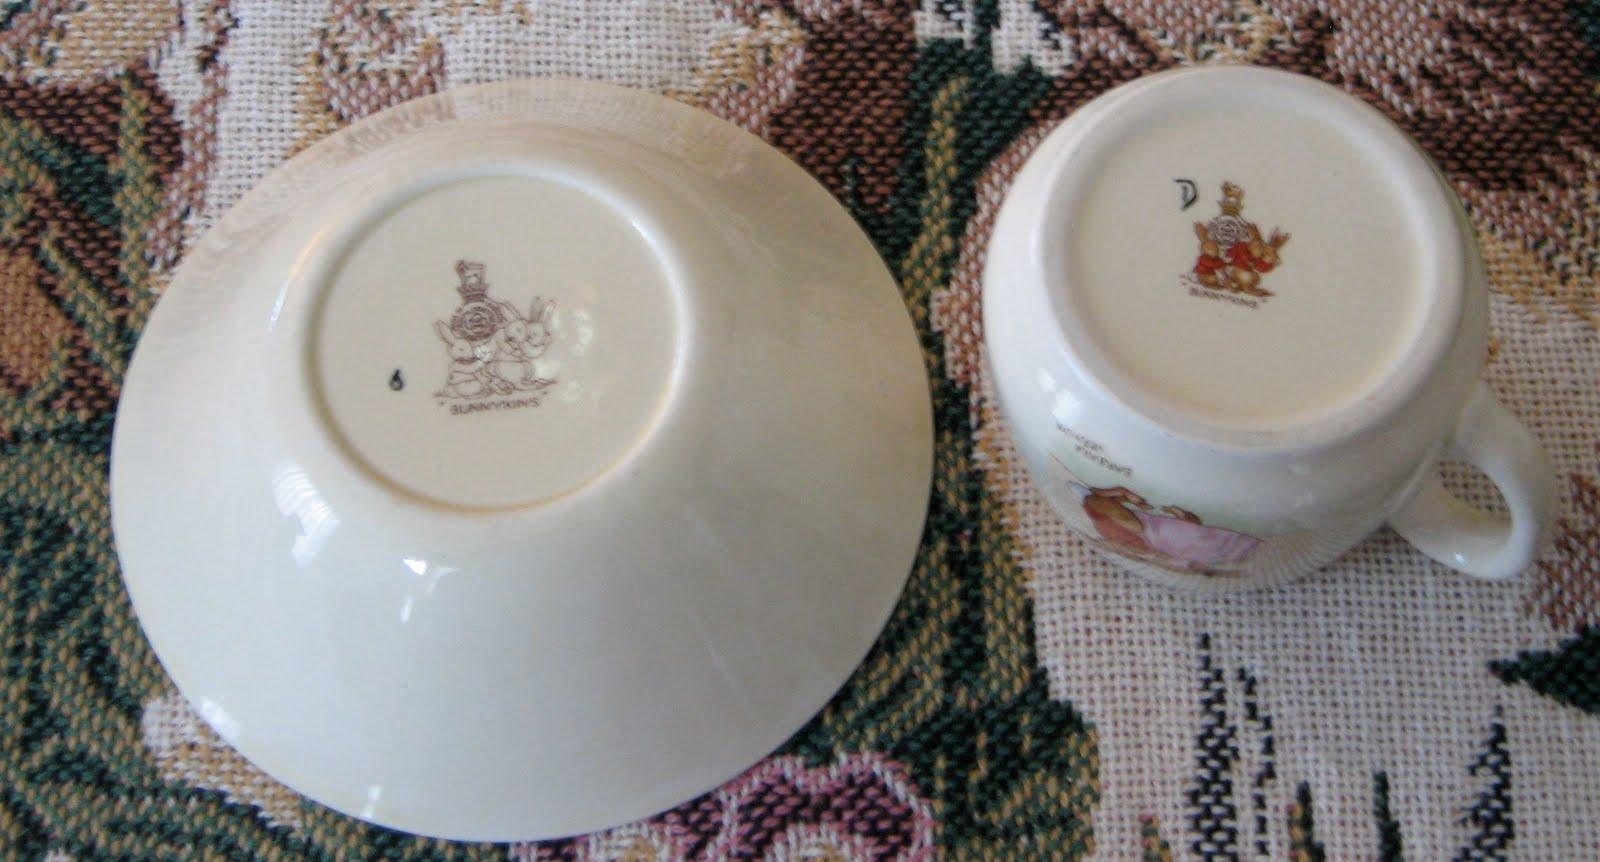 Teacup lane vintage royal doulton quot bunnykins quot signed by barbara